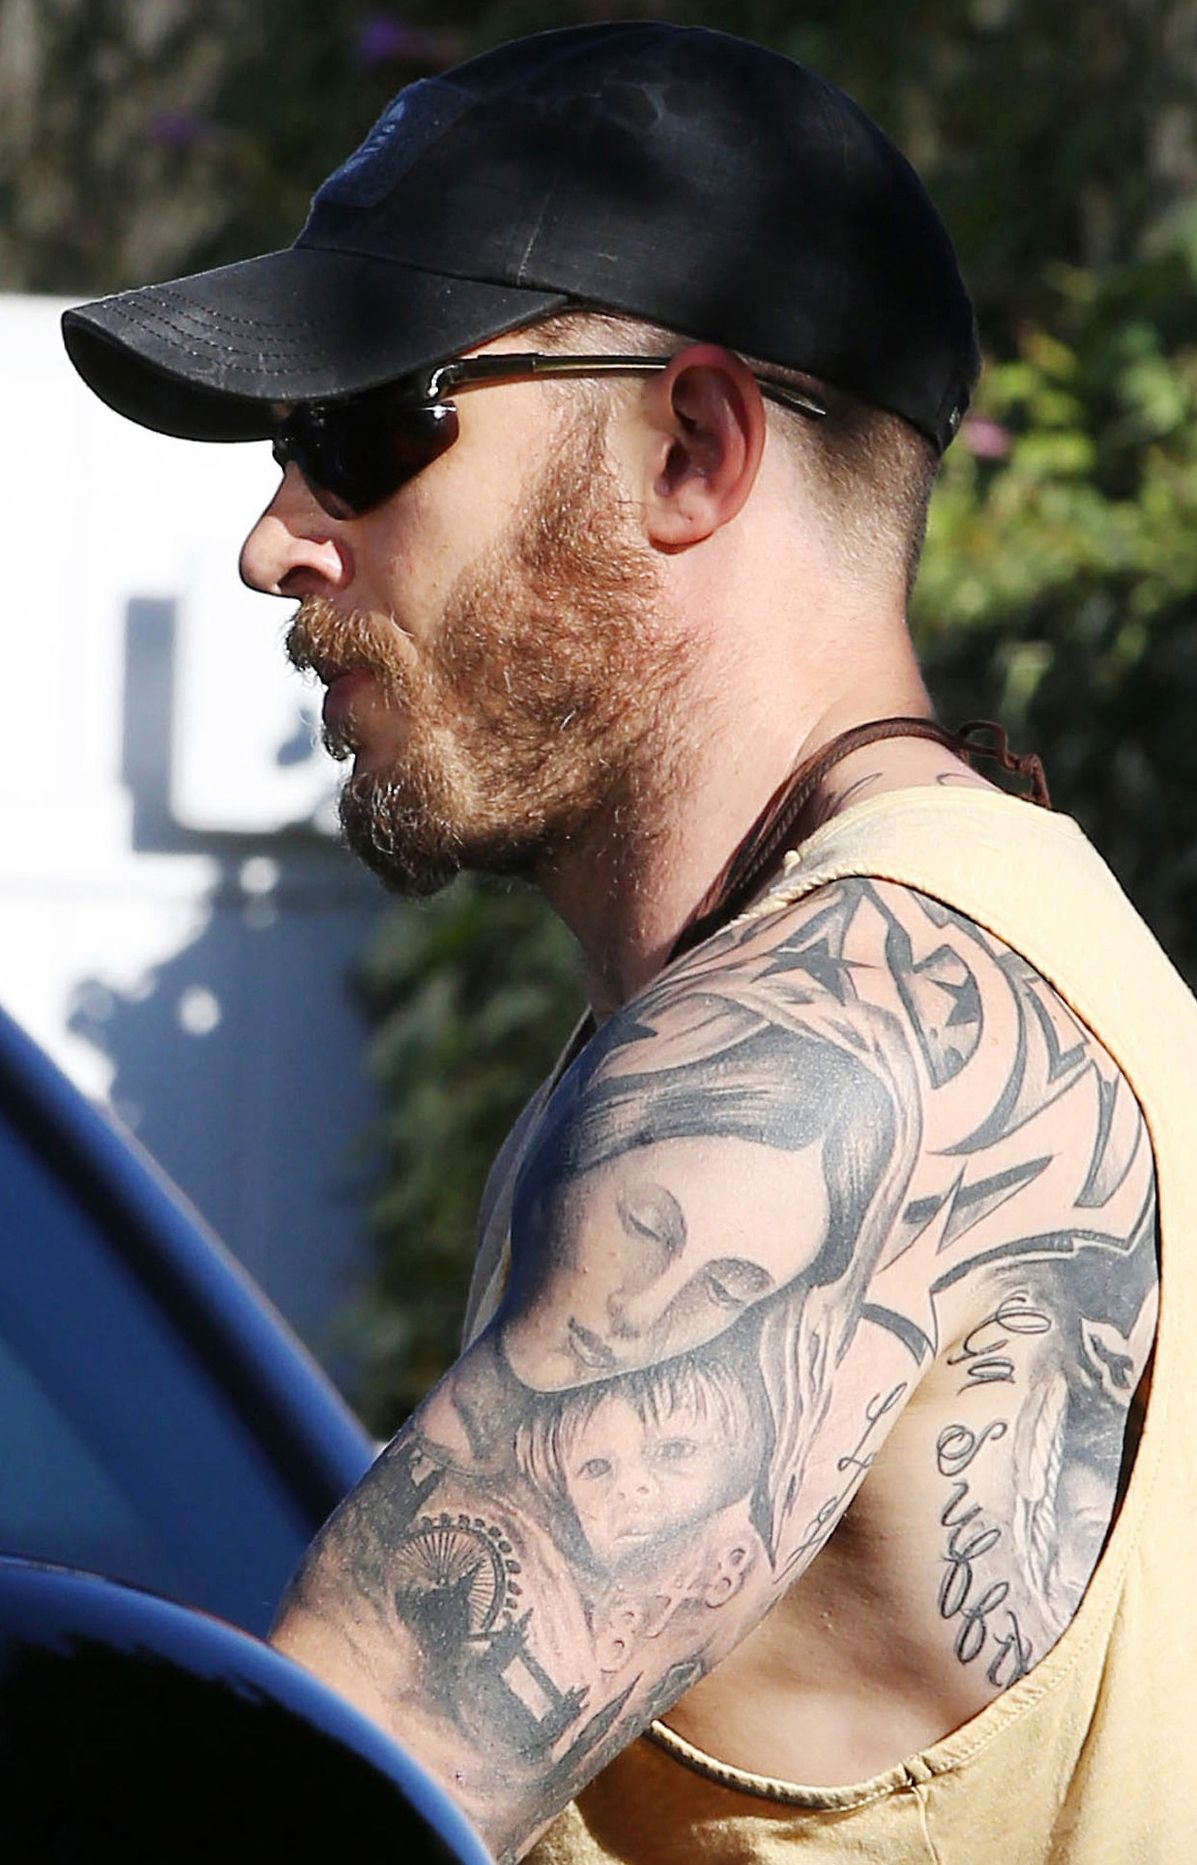 tom hardy tattoo - Google Search | Tom Hardy | Pinterest ...